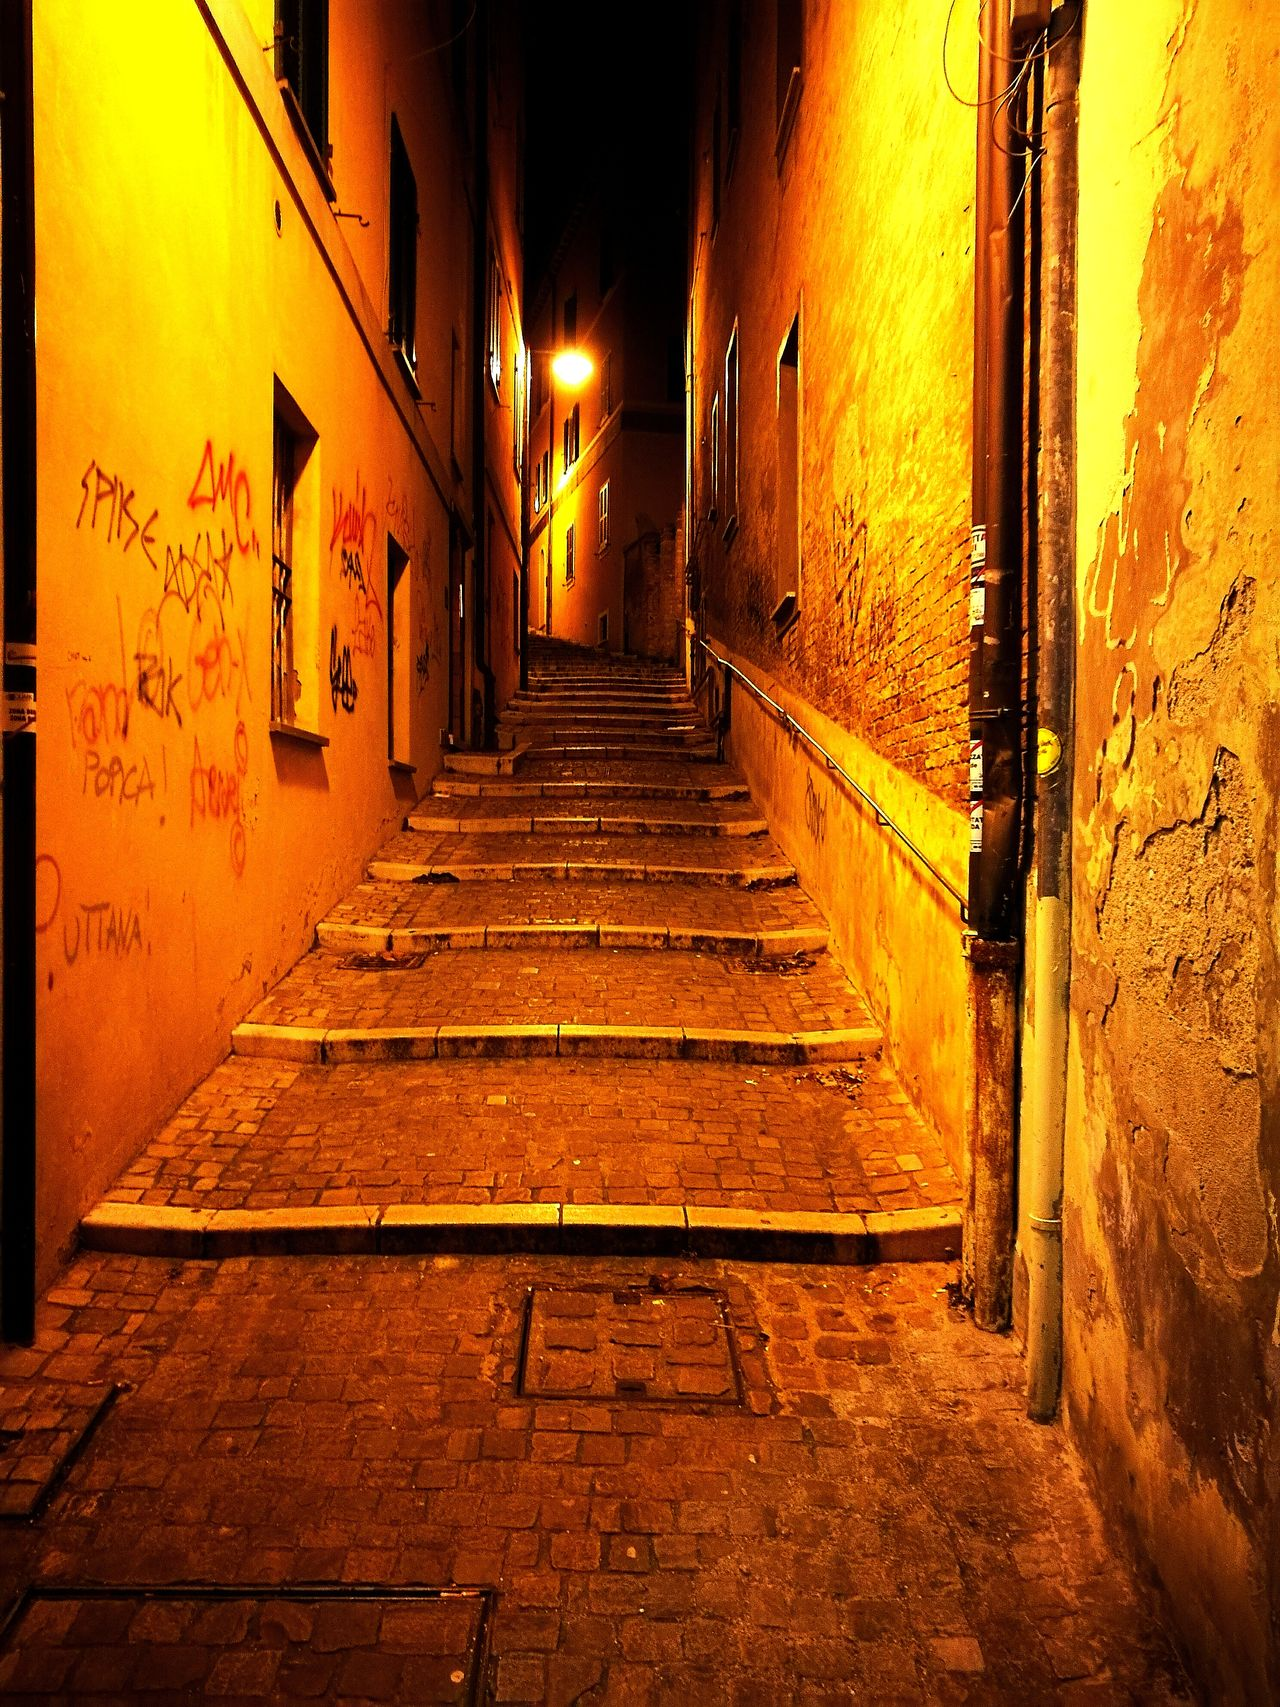 Built Structure The Way Forward Architecture No People Outdoors City Illuminated Night Night Life Street Stairs & Shadows Taking Photos Holiday EyeEmNewHere